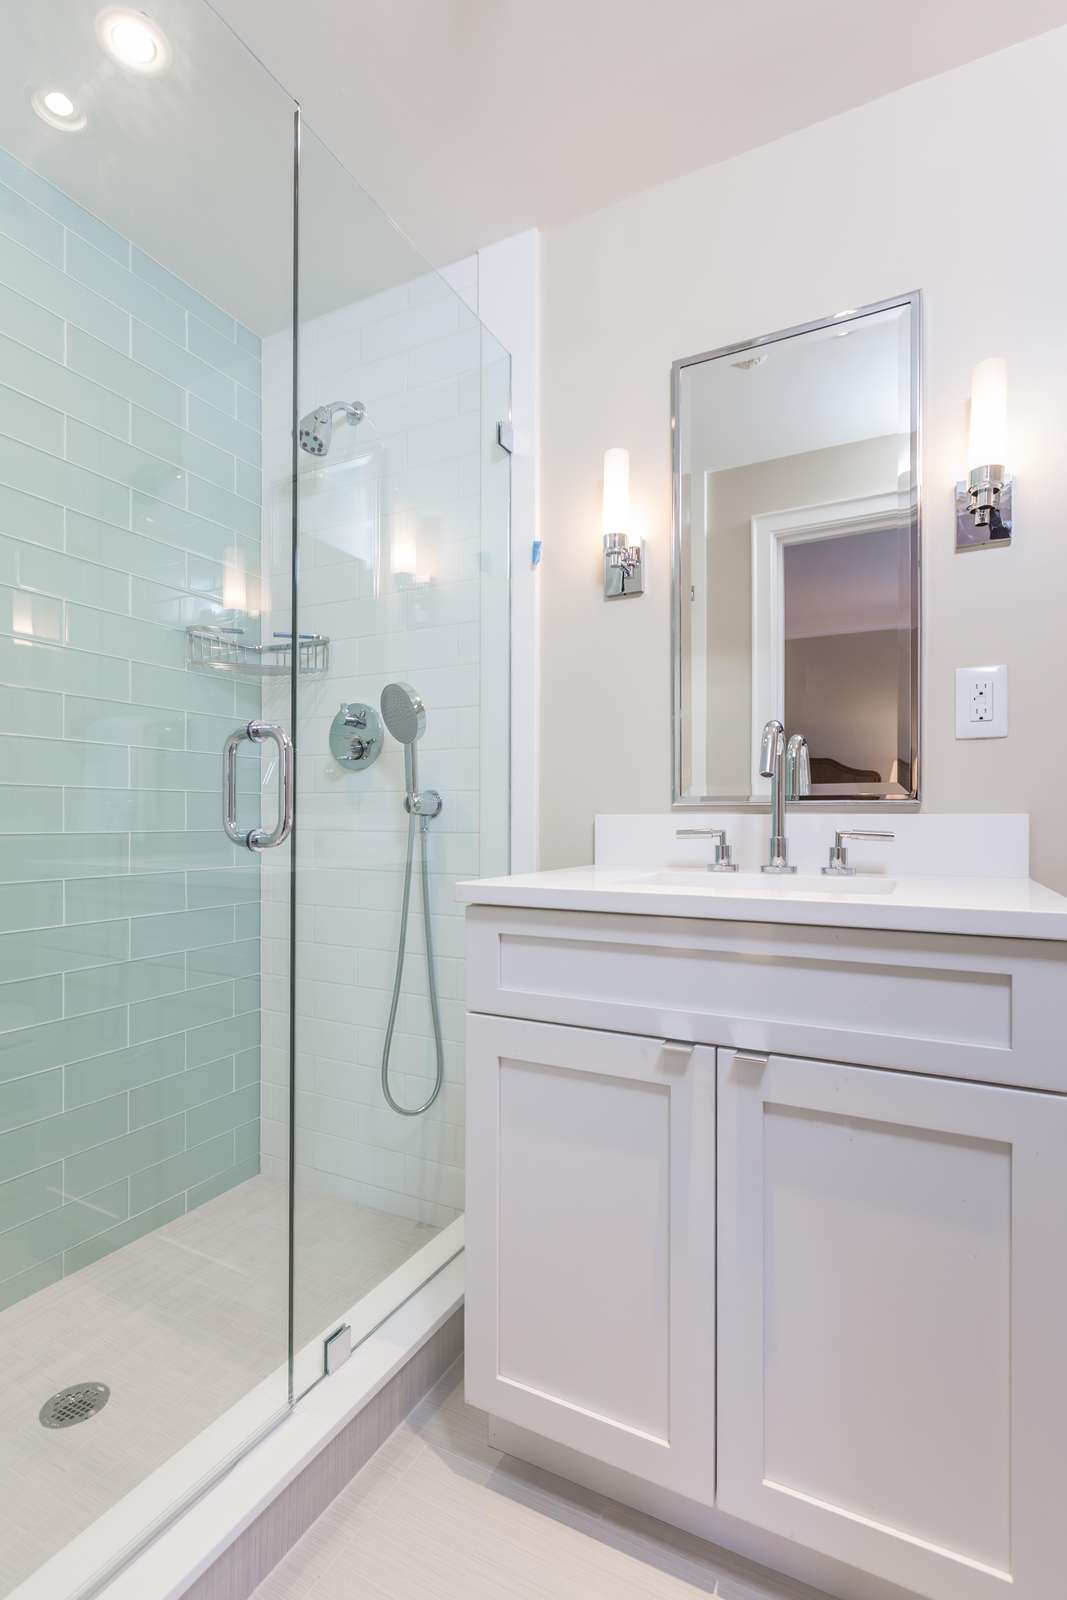 2nd bathroom with tile shower, glass doors and 2 shower heads